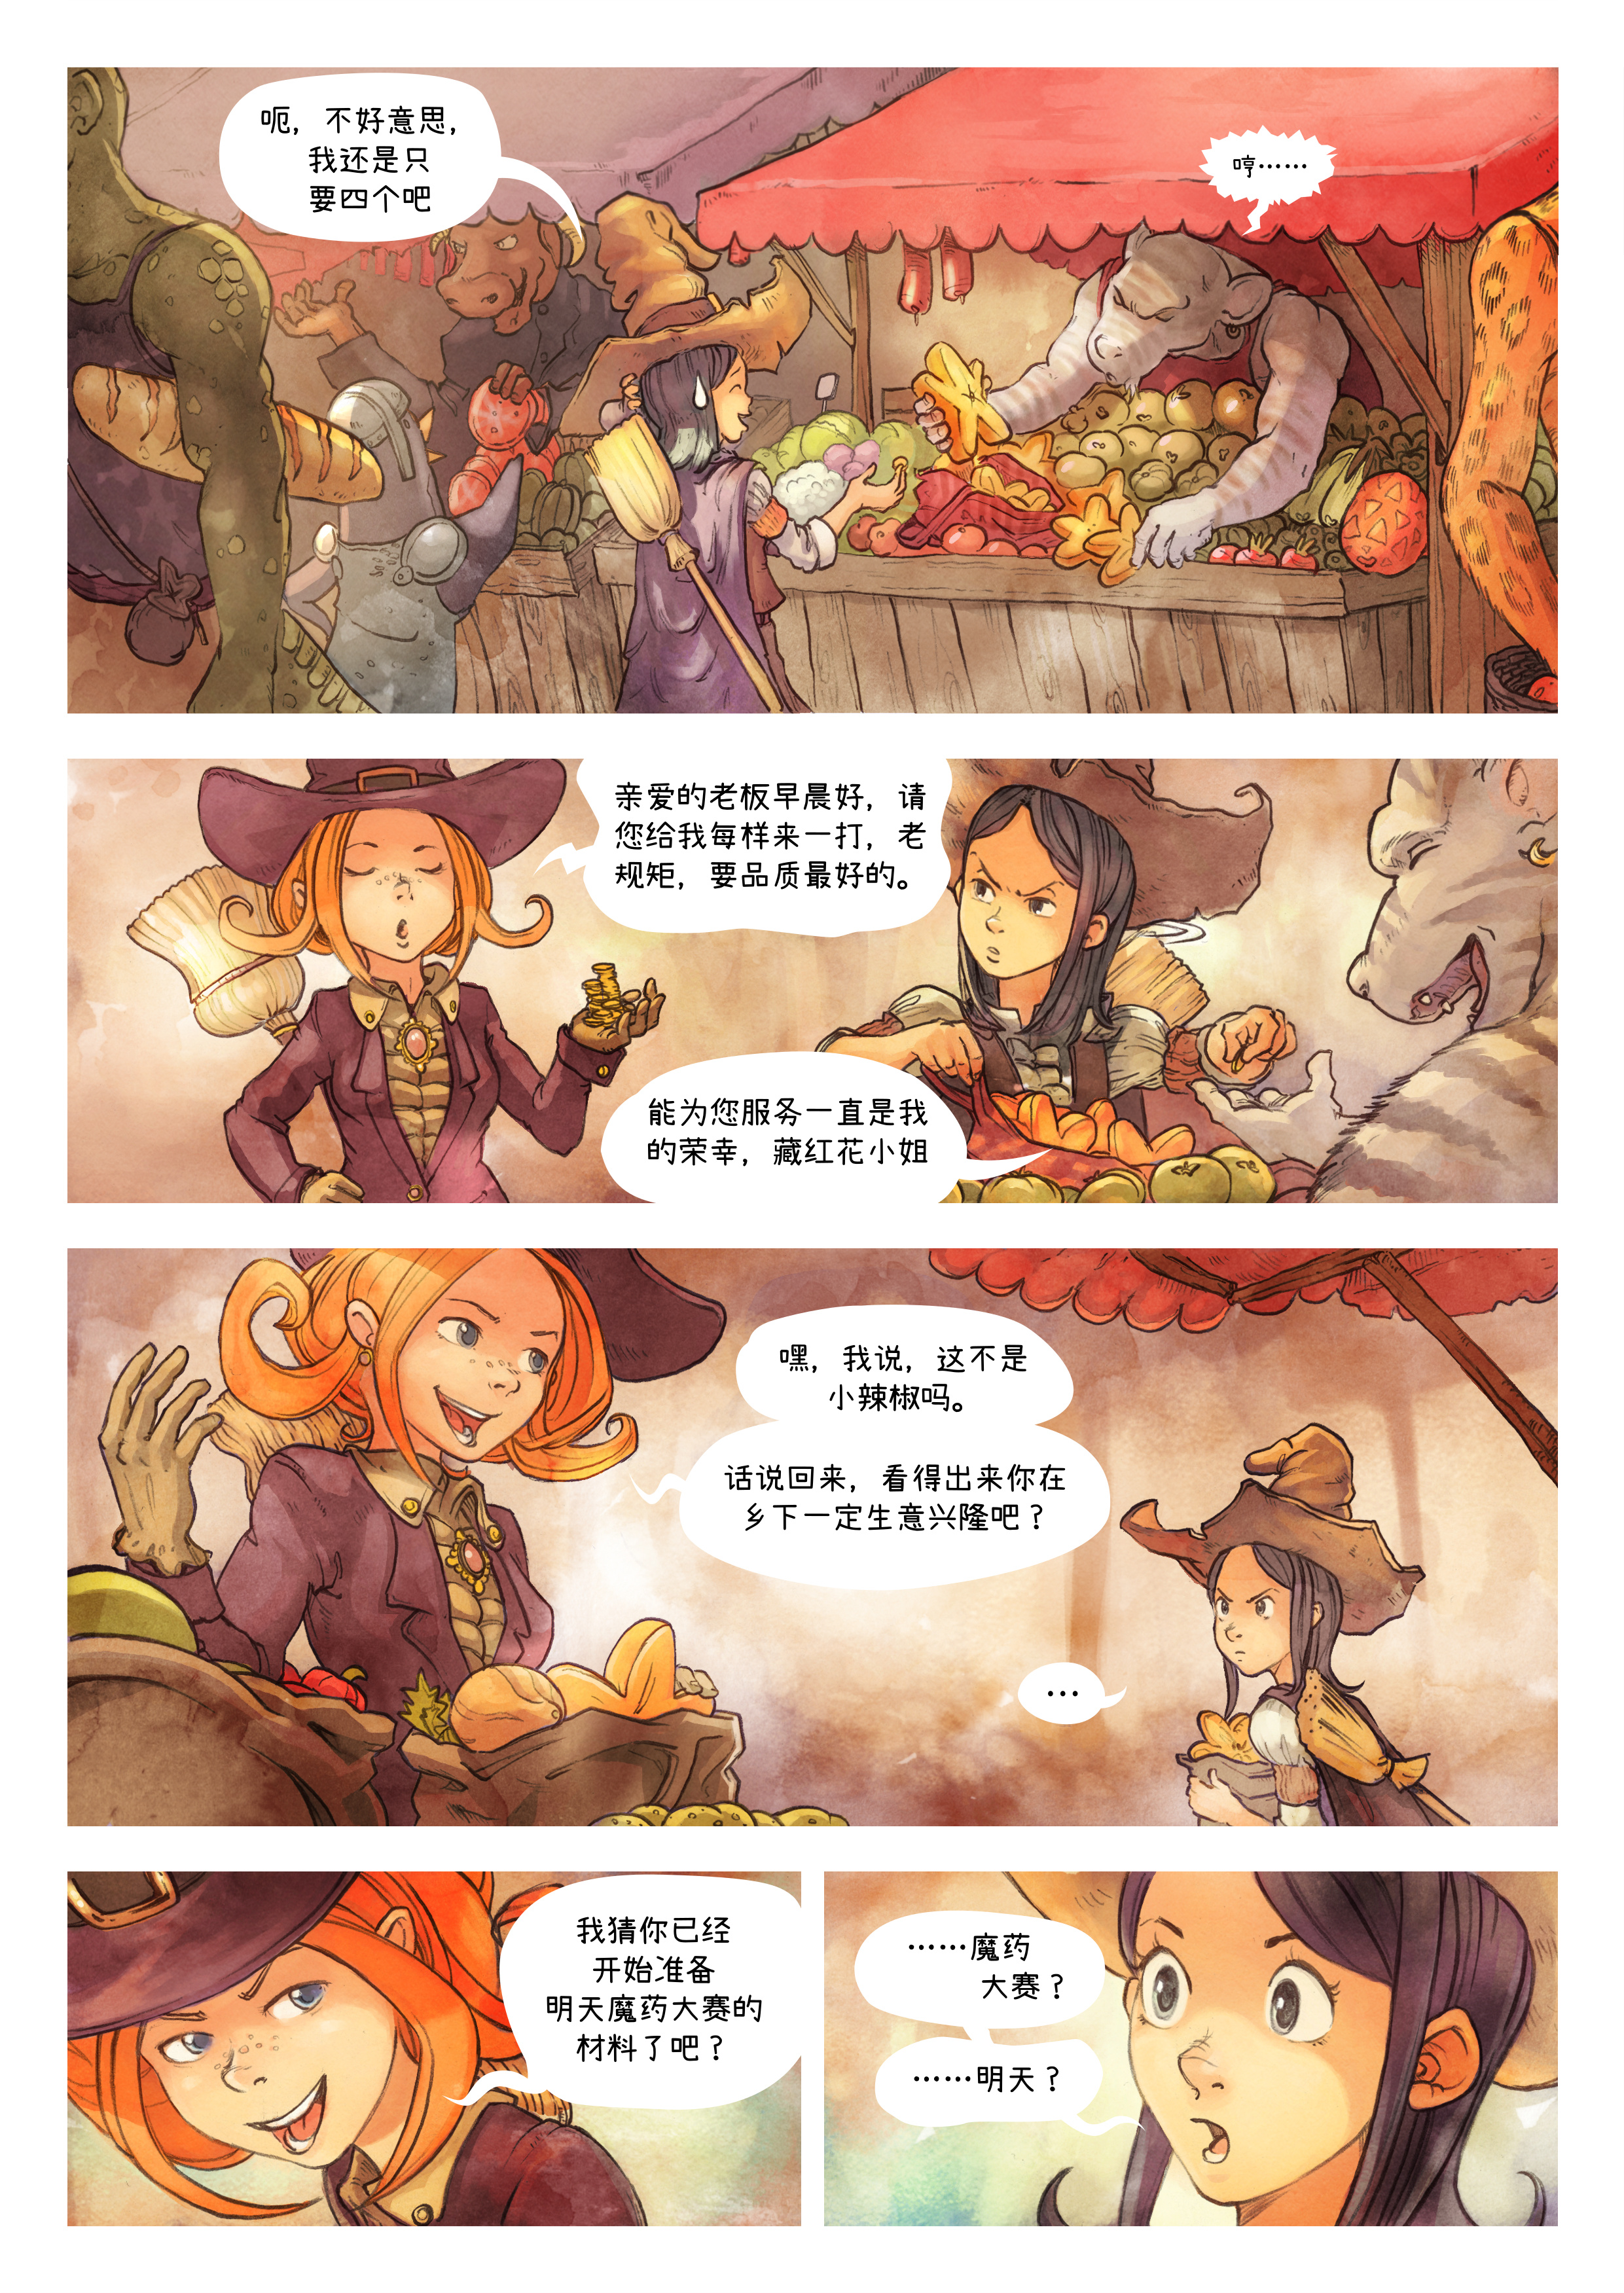 A webcomic page of Pepper&Carrot, 漫画全集 3 [cn], 页面 2